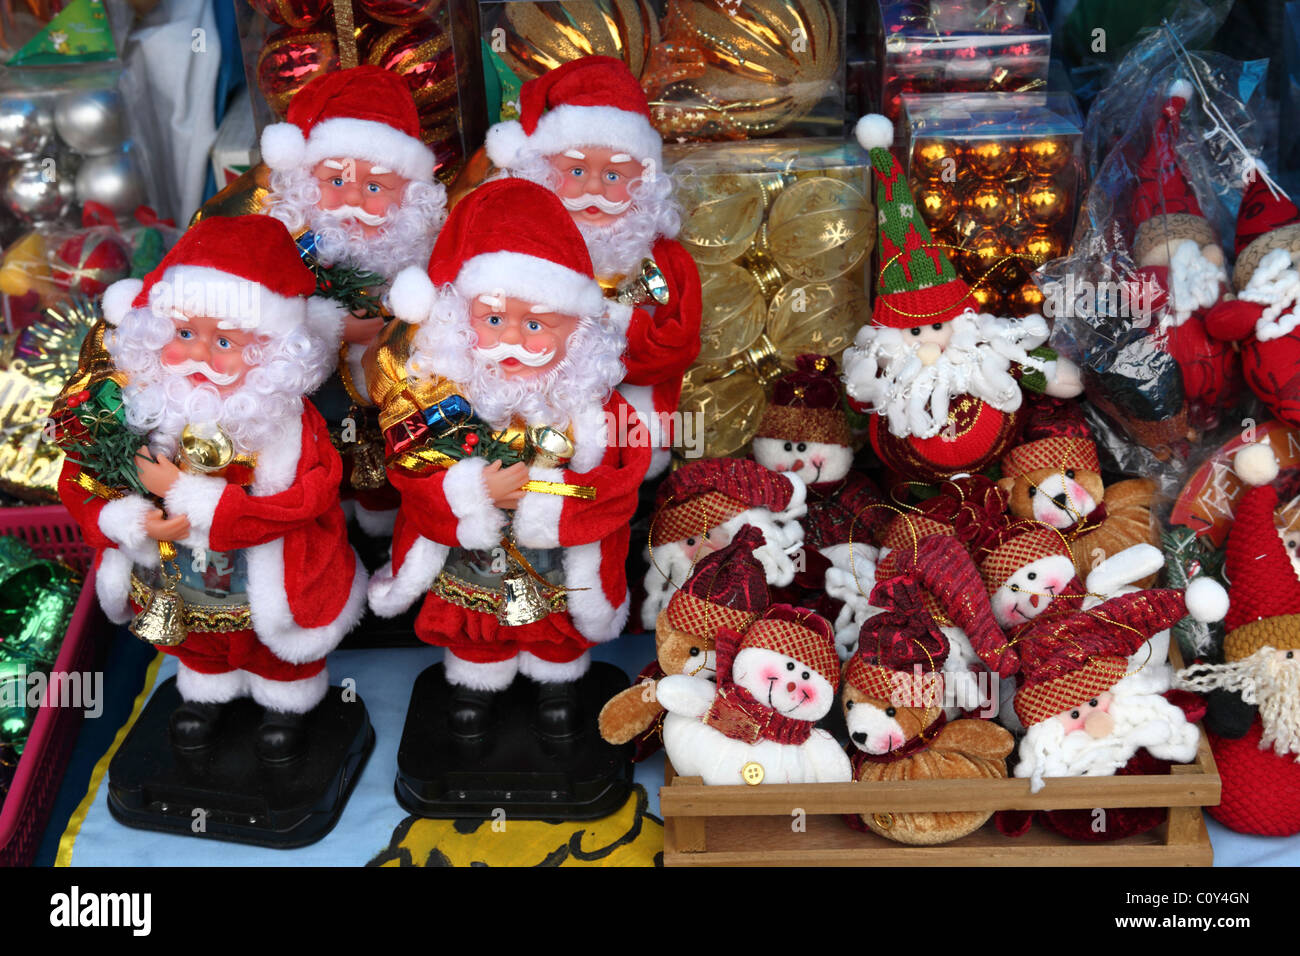 Toys From Santa : Santa claus figures and soft toys for sale in christmas